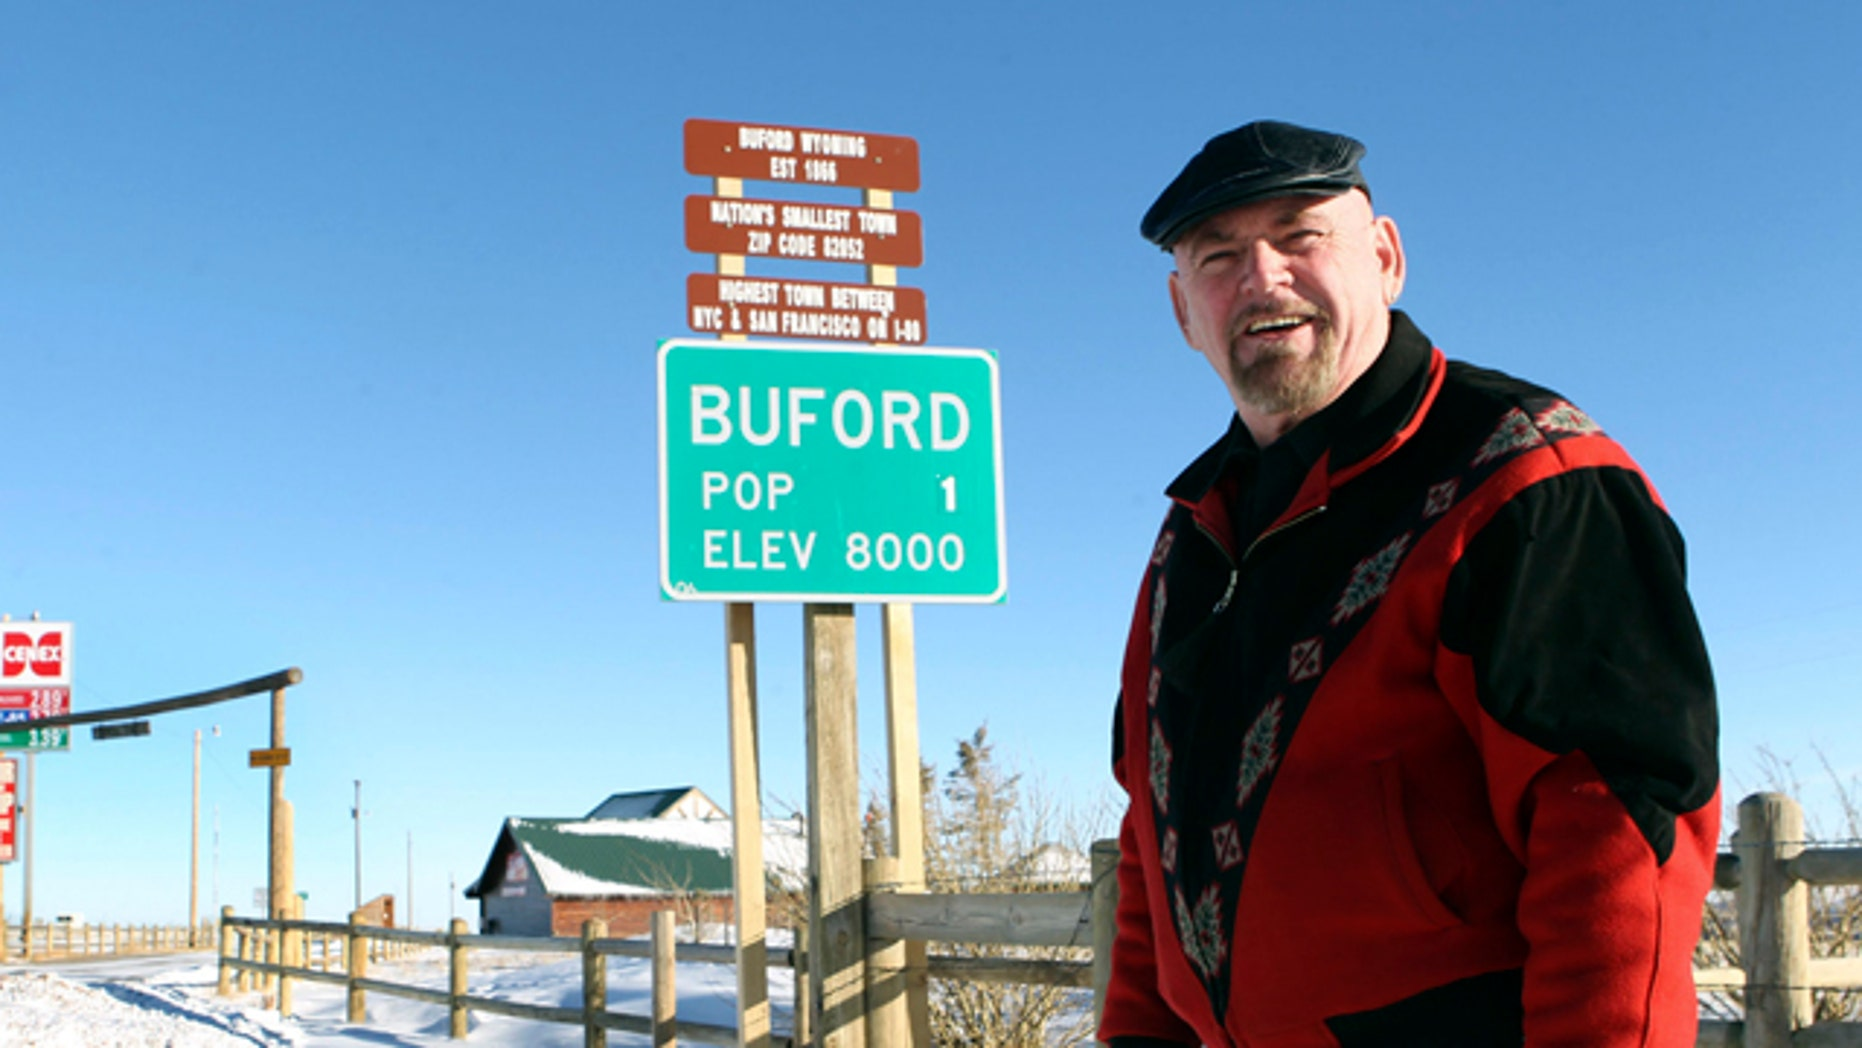 This Jan. 1, 2011 file photo shows Buford resident Don Sammons standing in front of the population sign in Buford, Wyo. The town advertised as the smallest in the United States has sold at auction for $900,000.